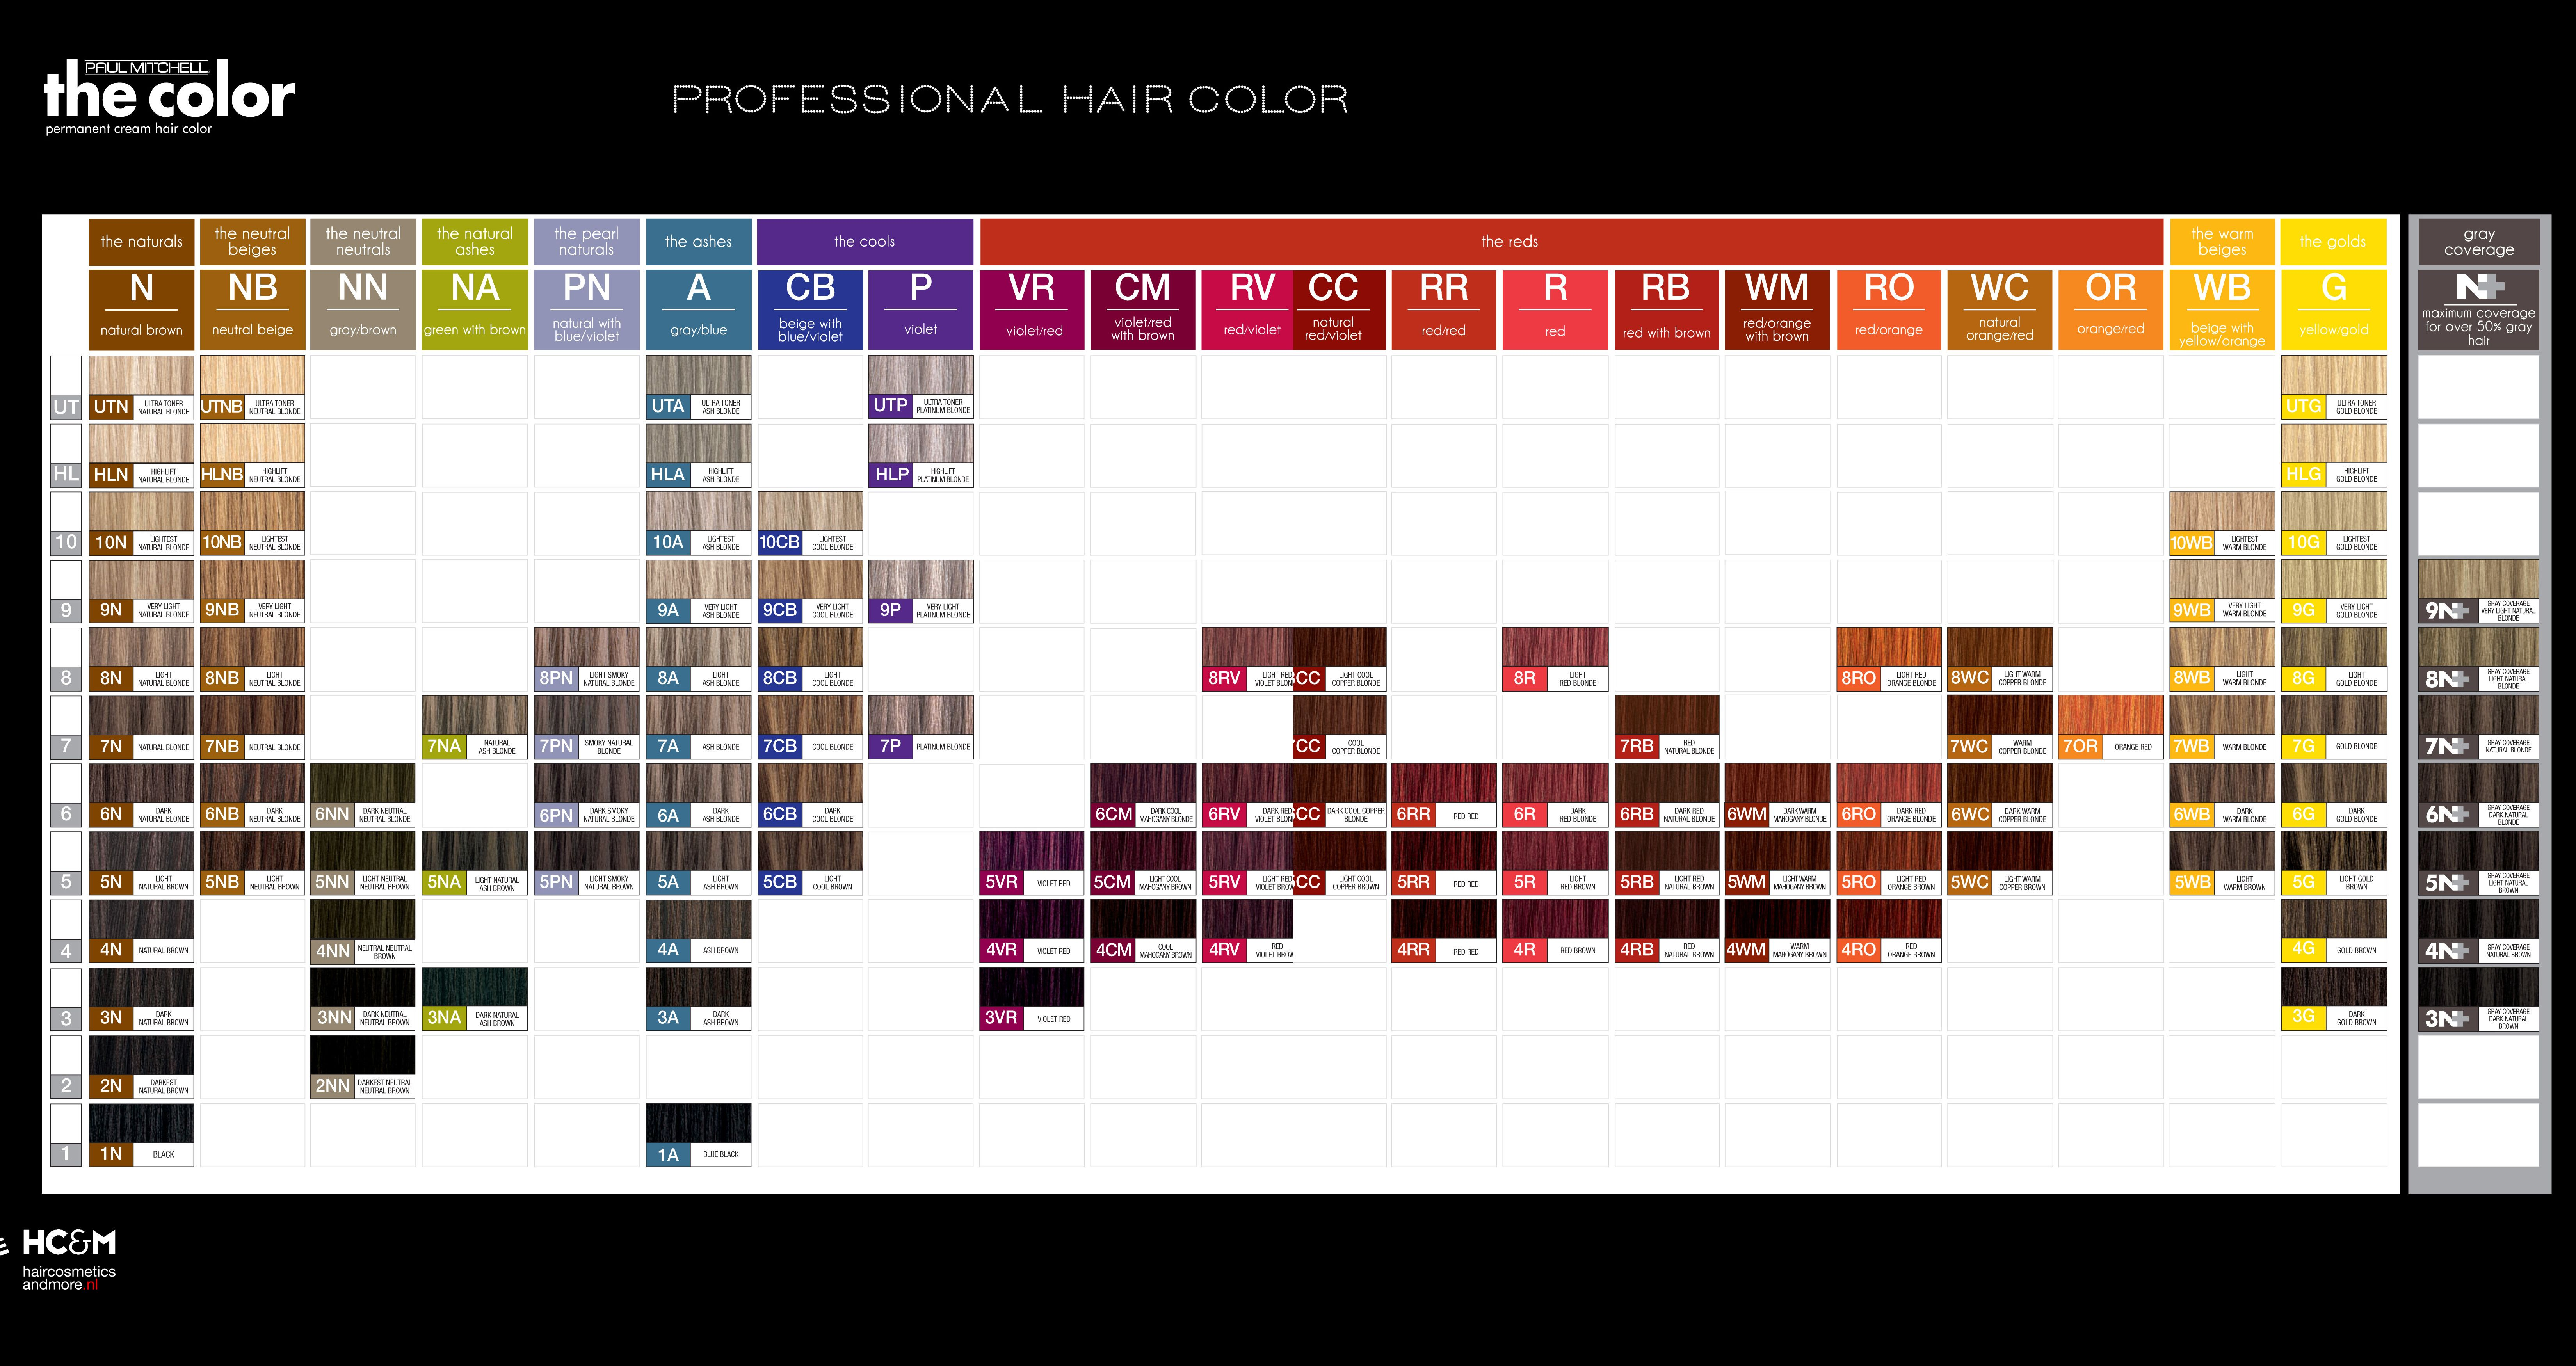 Paul Mitchell The Color Professional Hair Color Swatch Chart 2014 Paul Mitchell Color Chart Paul Mitchell Color Paul Mitchell